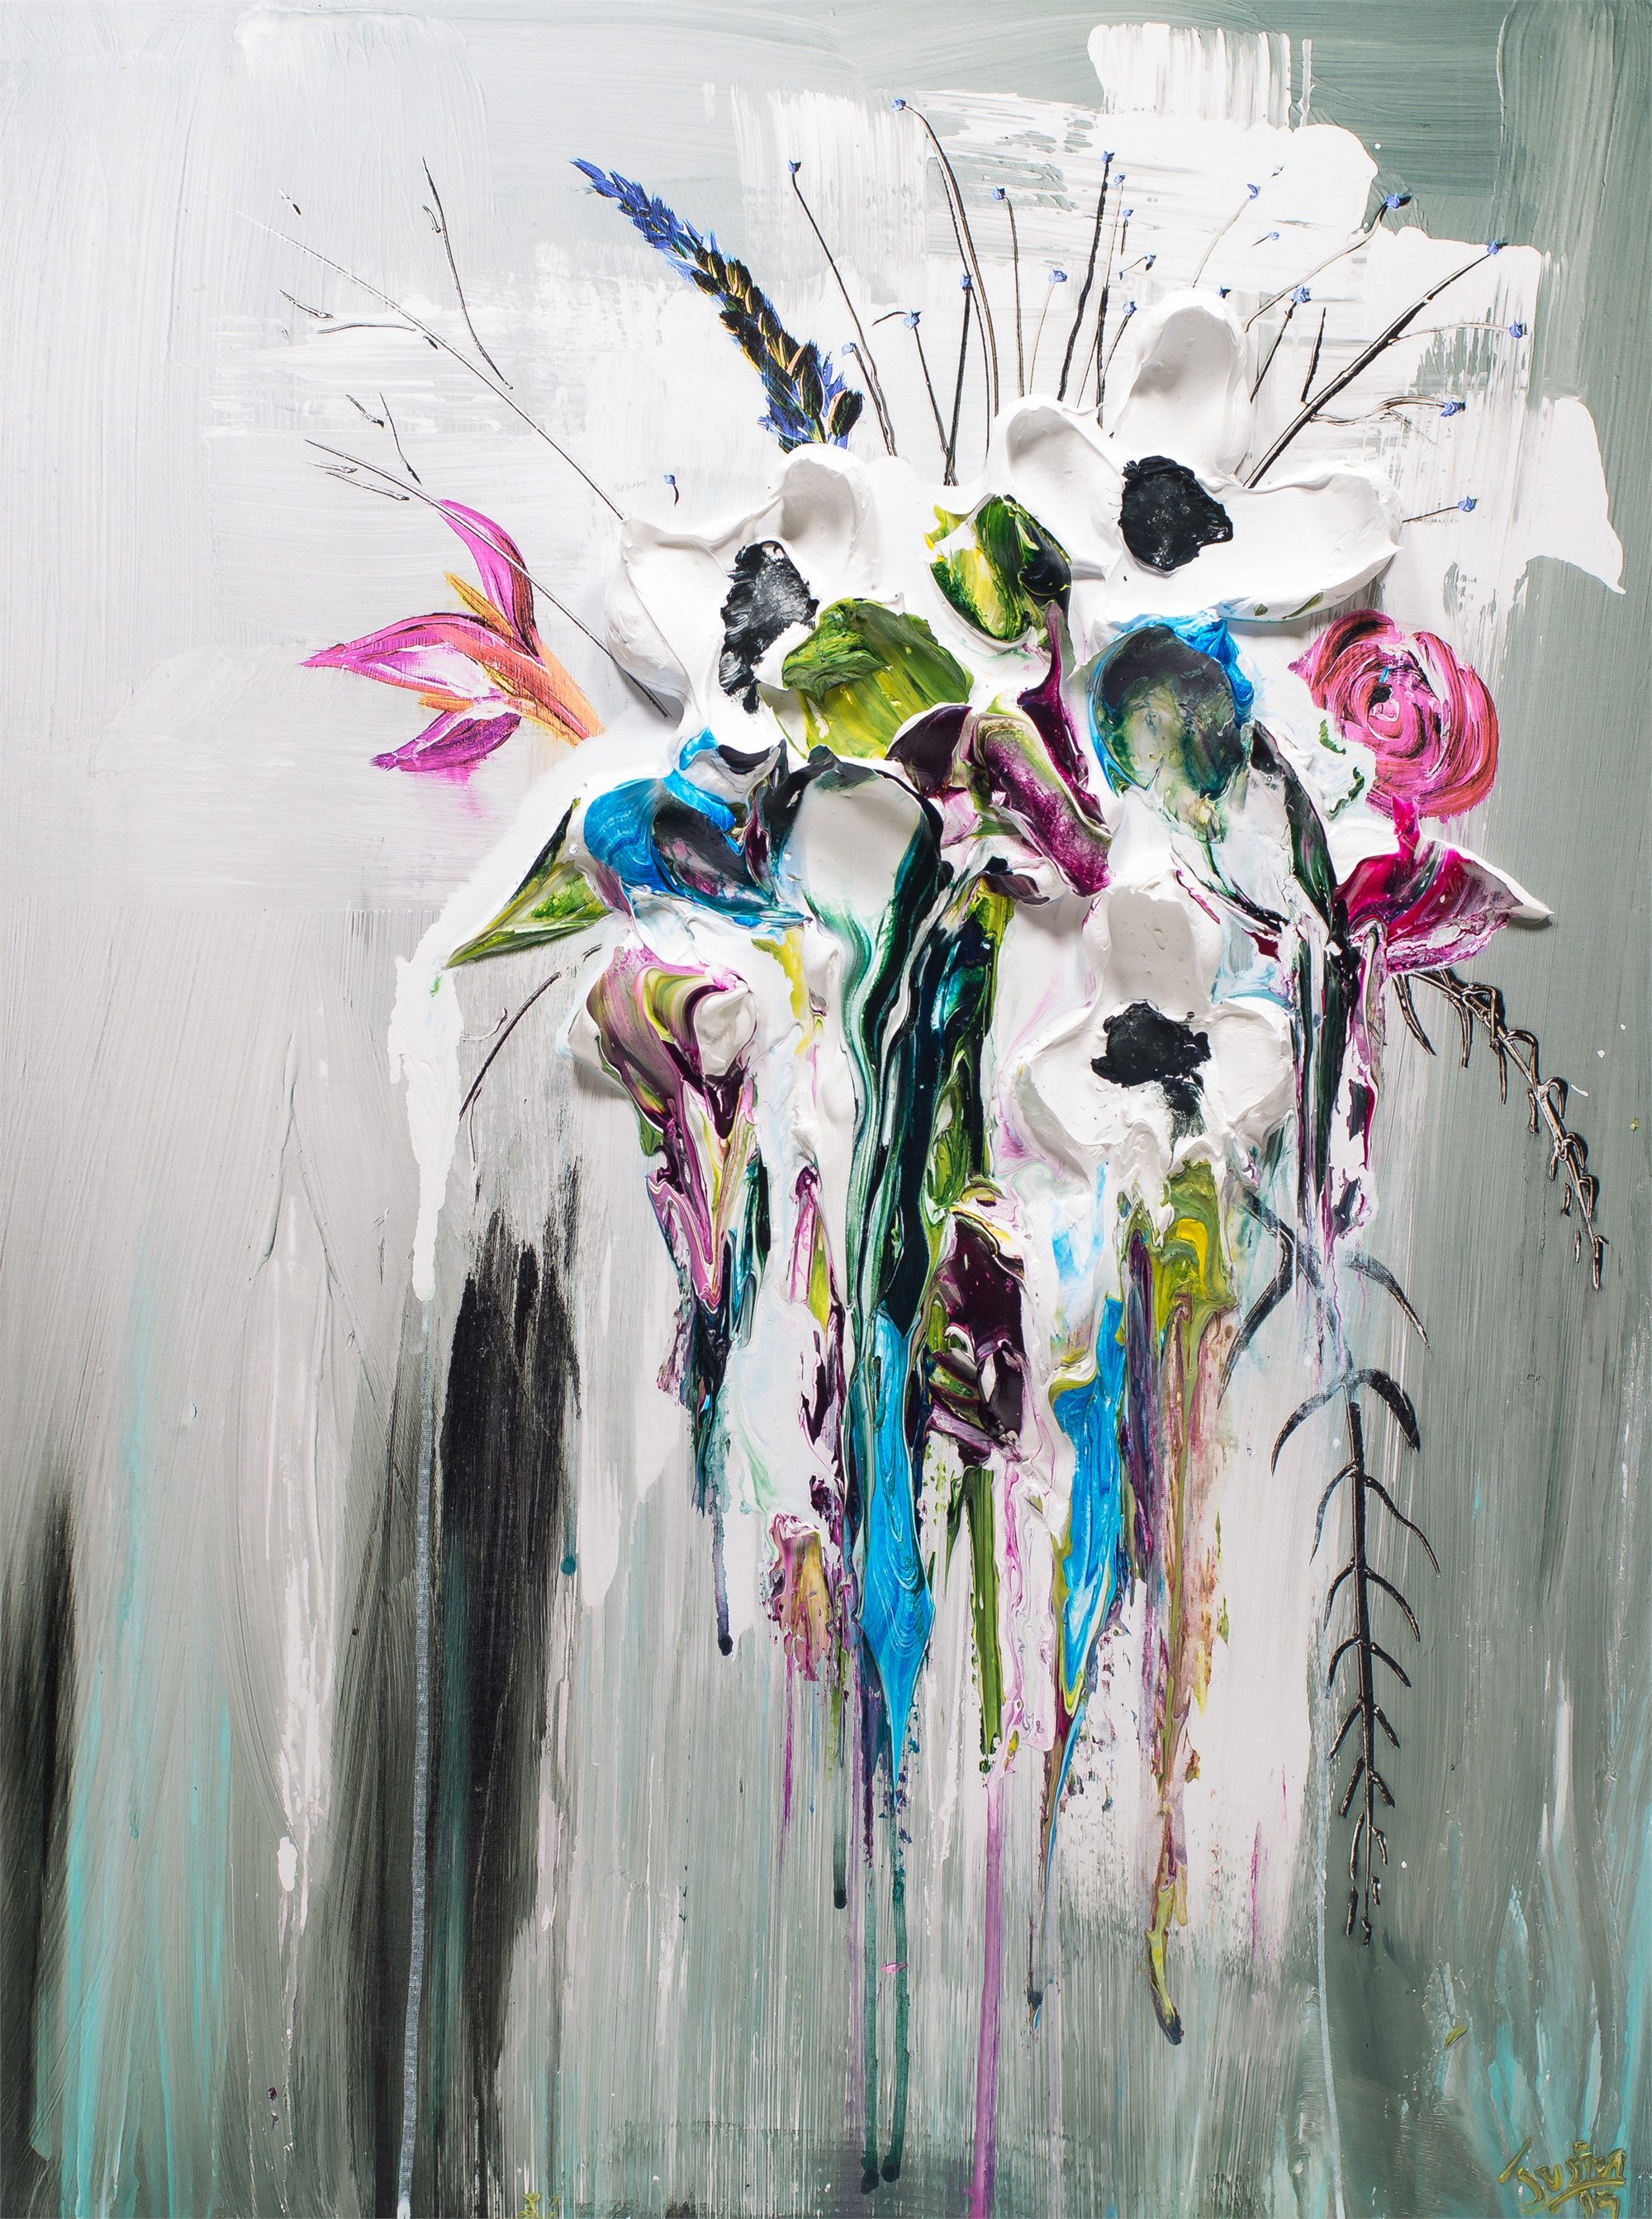 ABSTRACT FLORAL BOUQUET HPAE 9/50 by JUSTIN GAFFREY